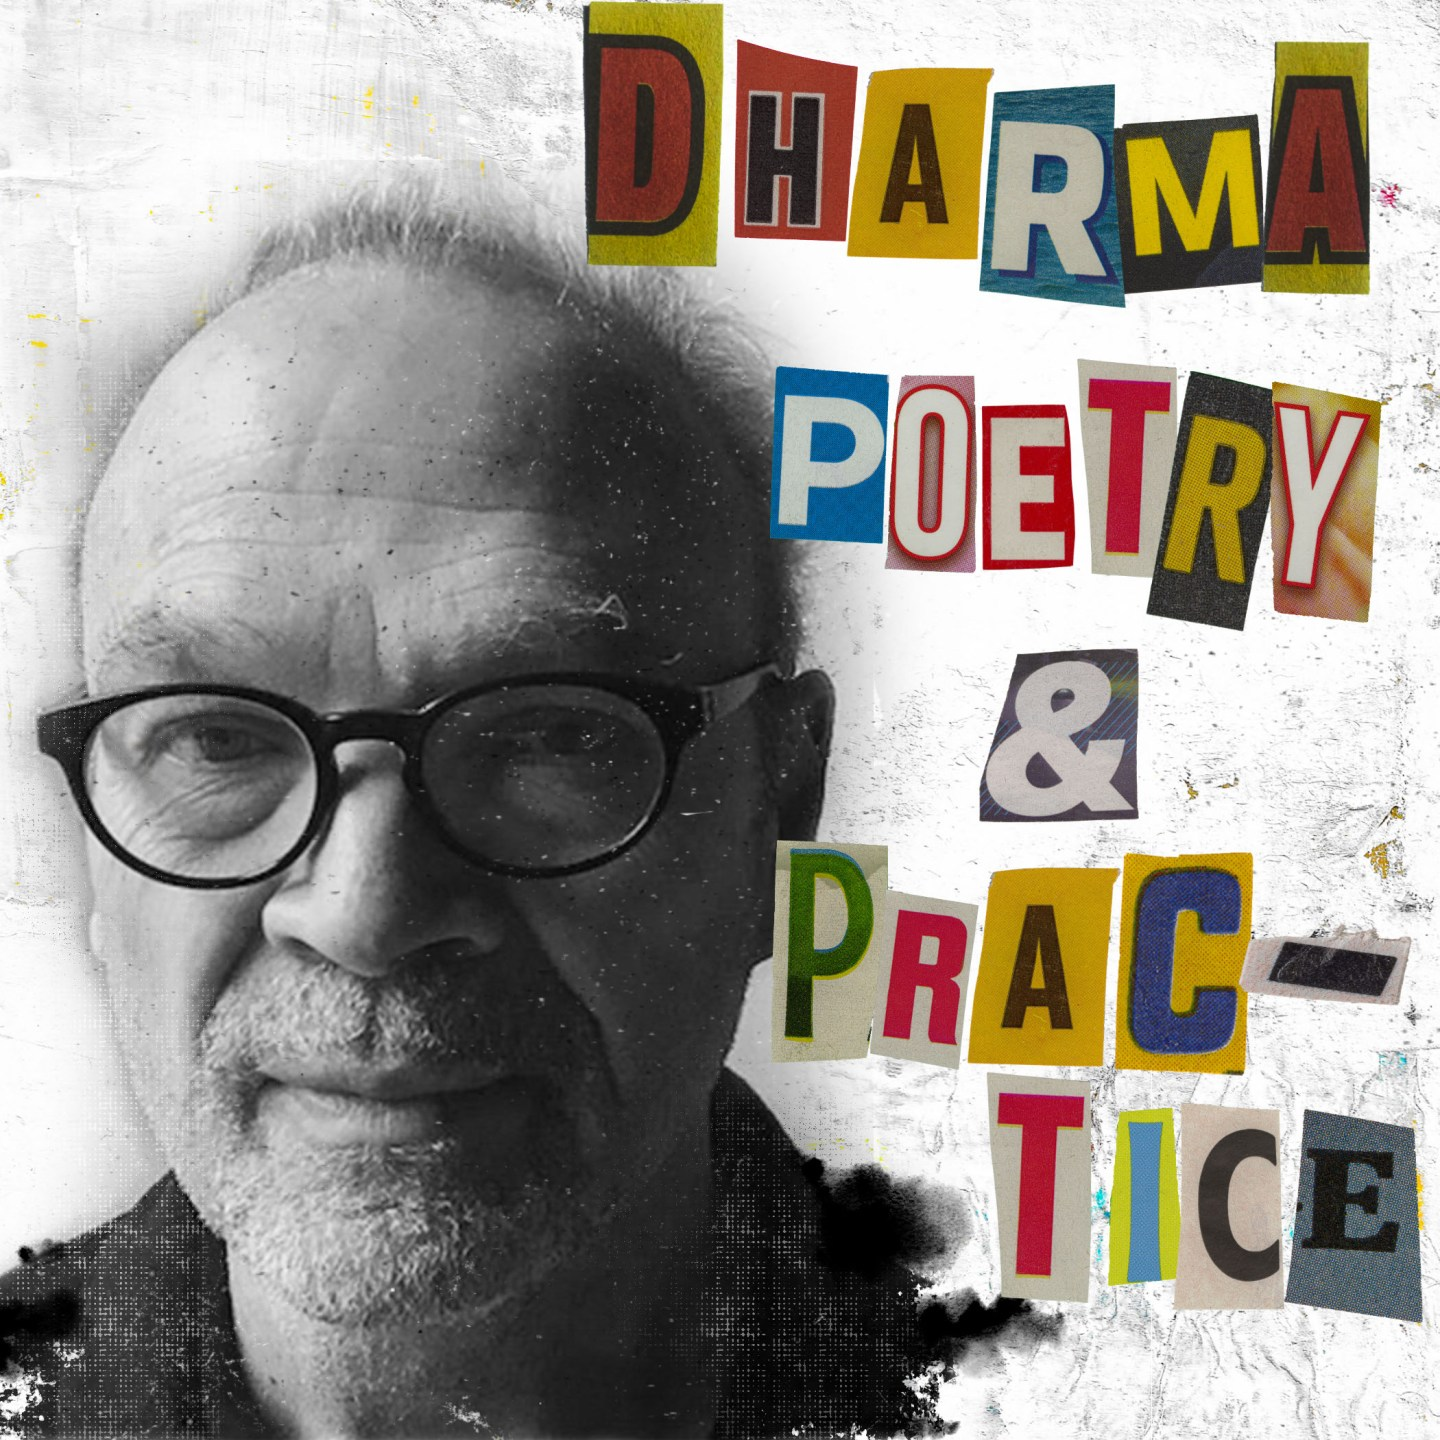 Dharma, Poetry, & Practice: An Interview with John Brehm